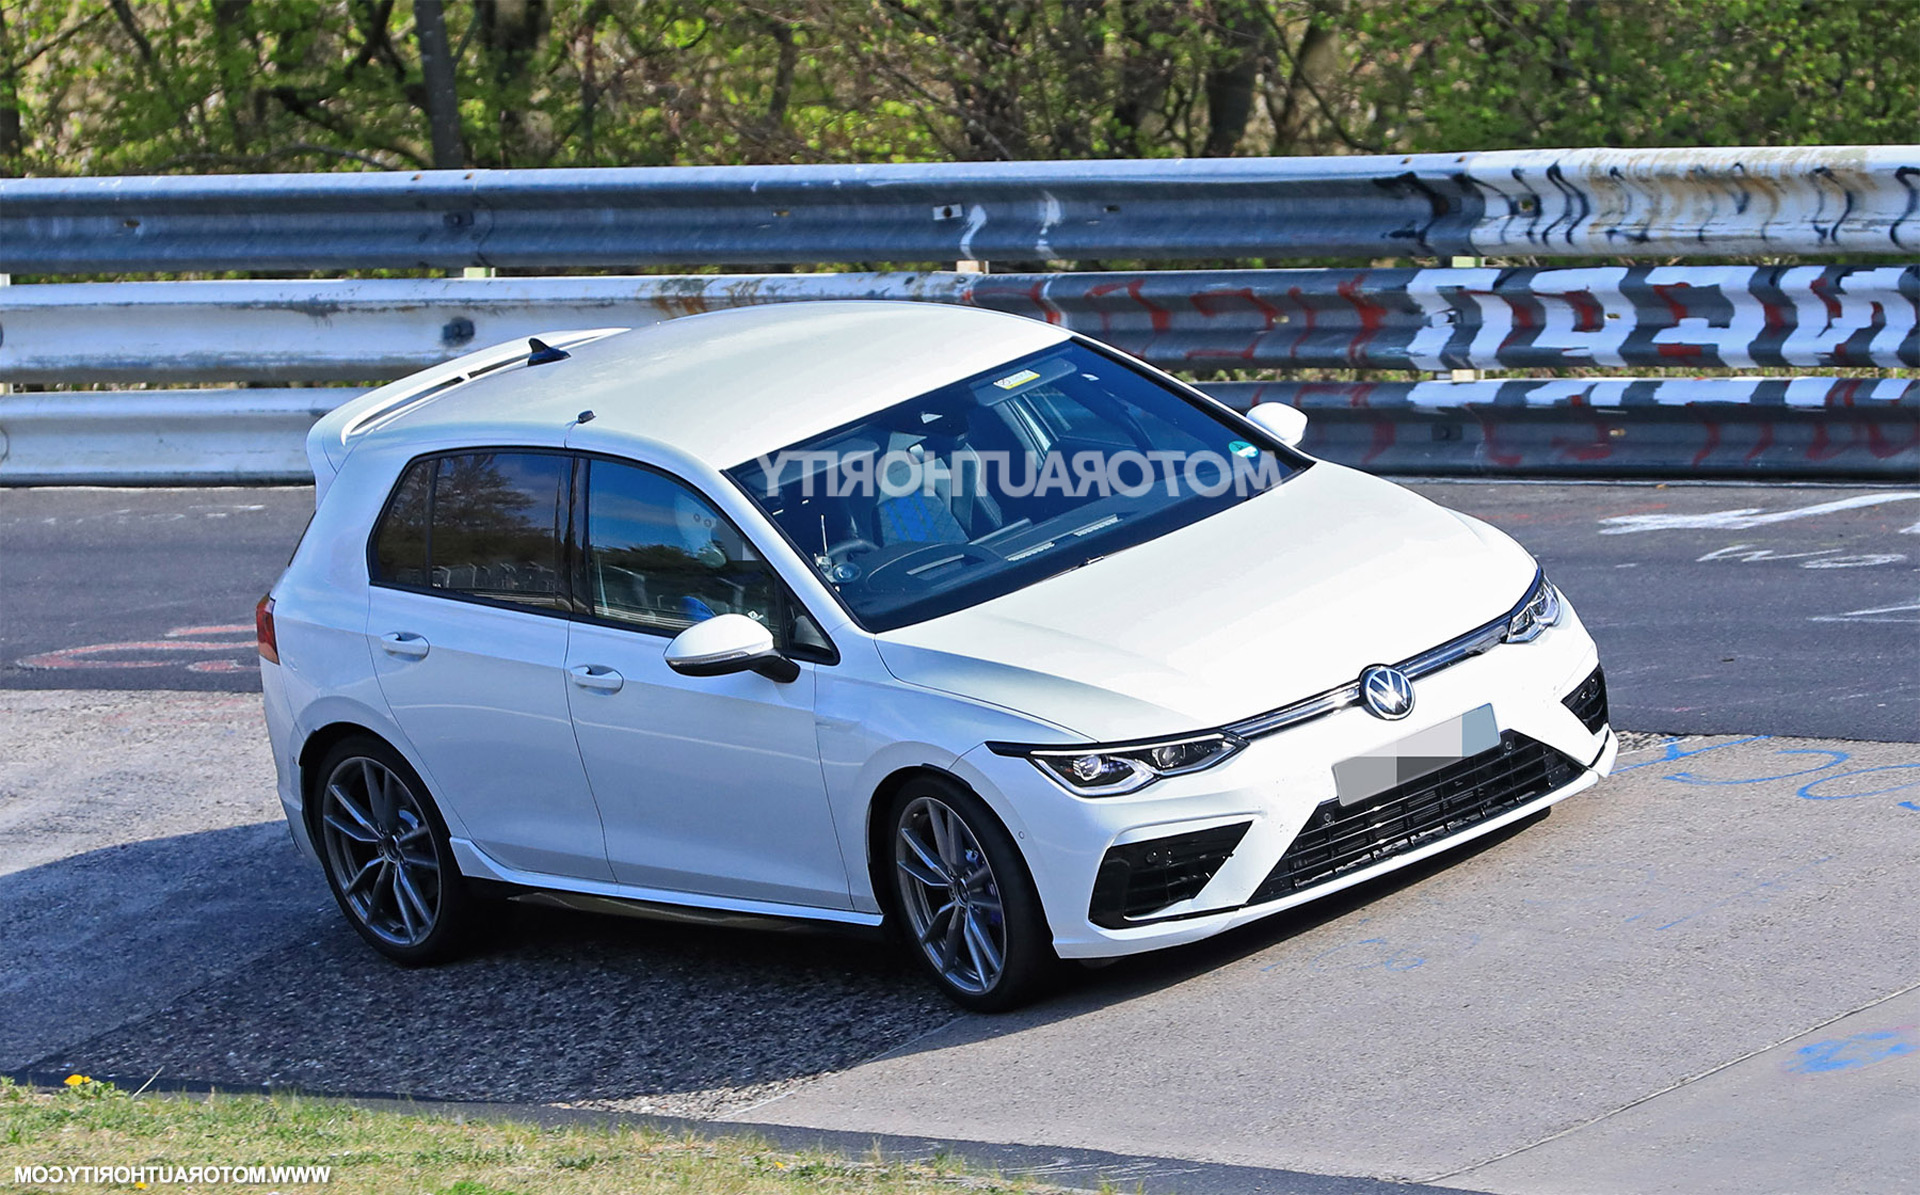 2021 Volkswagen Golf R Spy Shots And Video